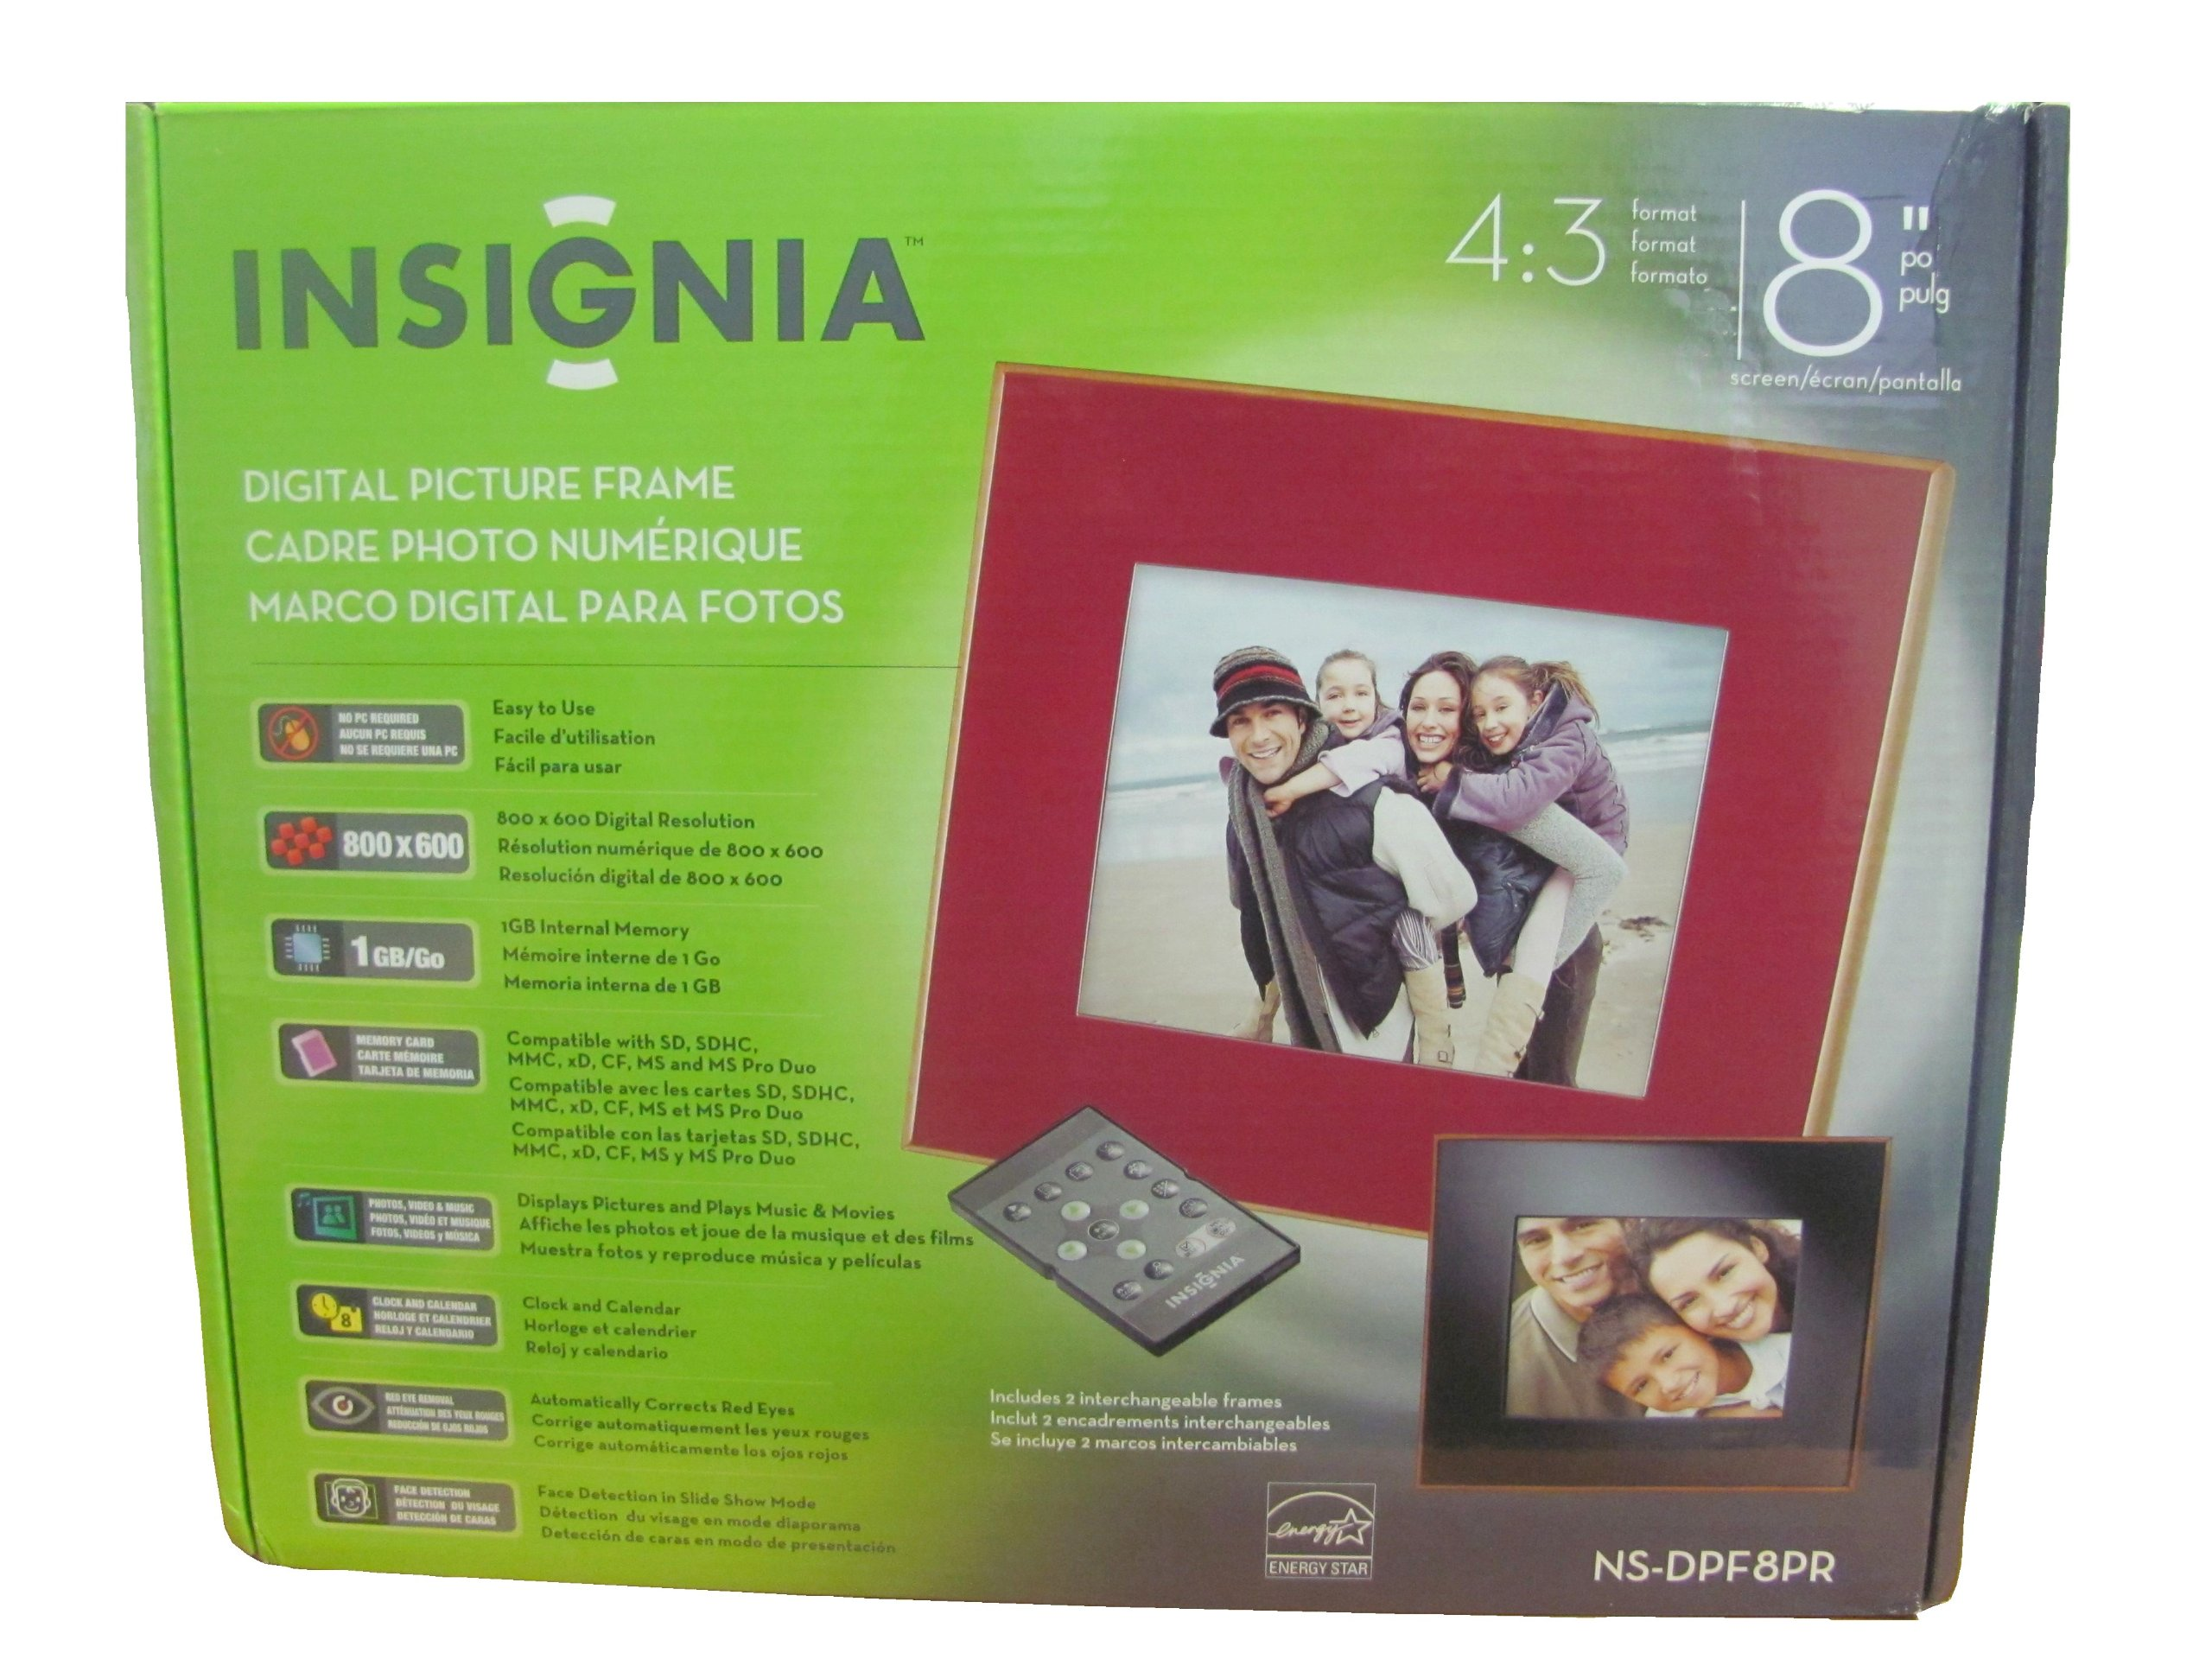 Insignia Digital Picture Frame 8 inch 1GB by Insignia